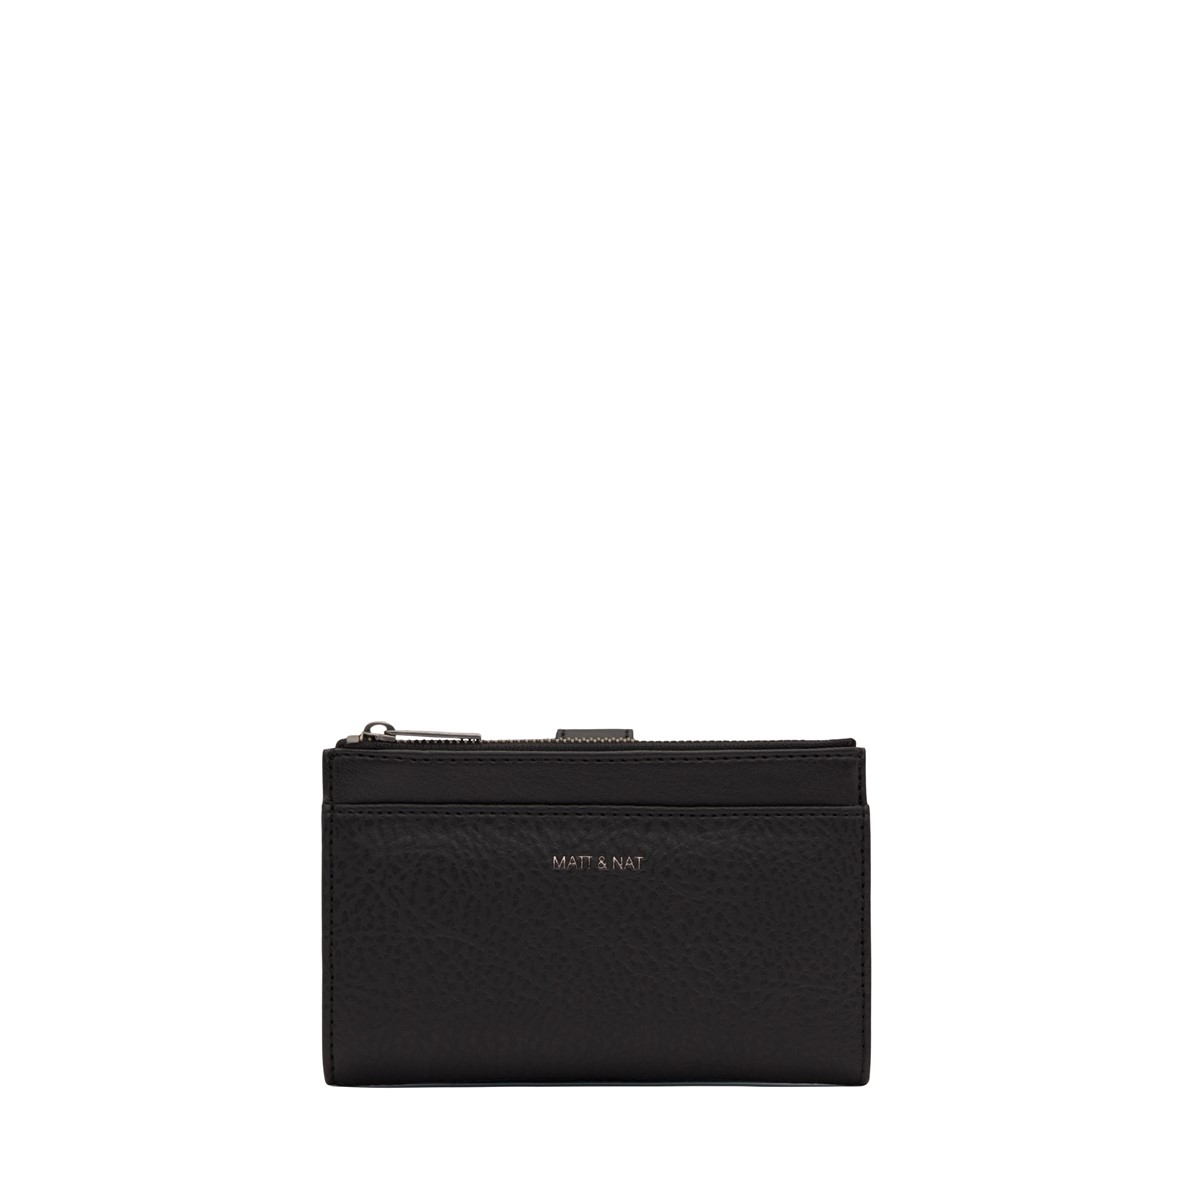 Motivsm Small Wallet in Black